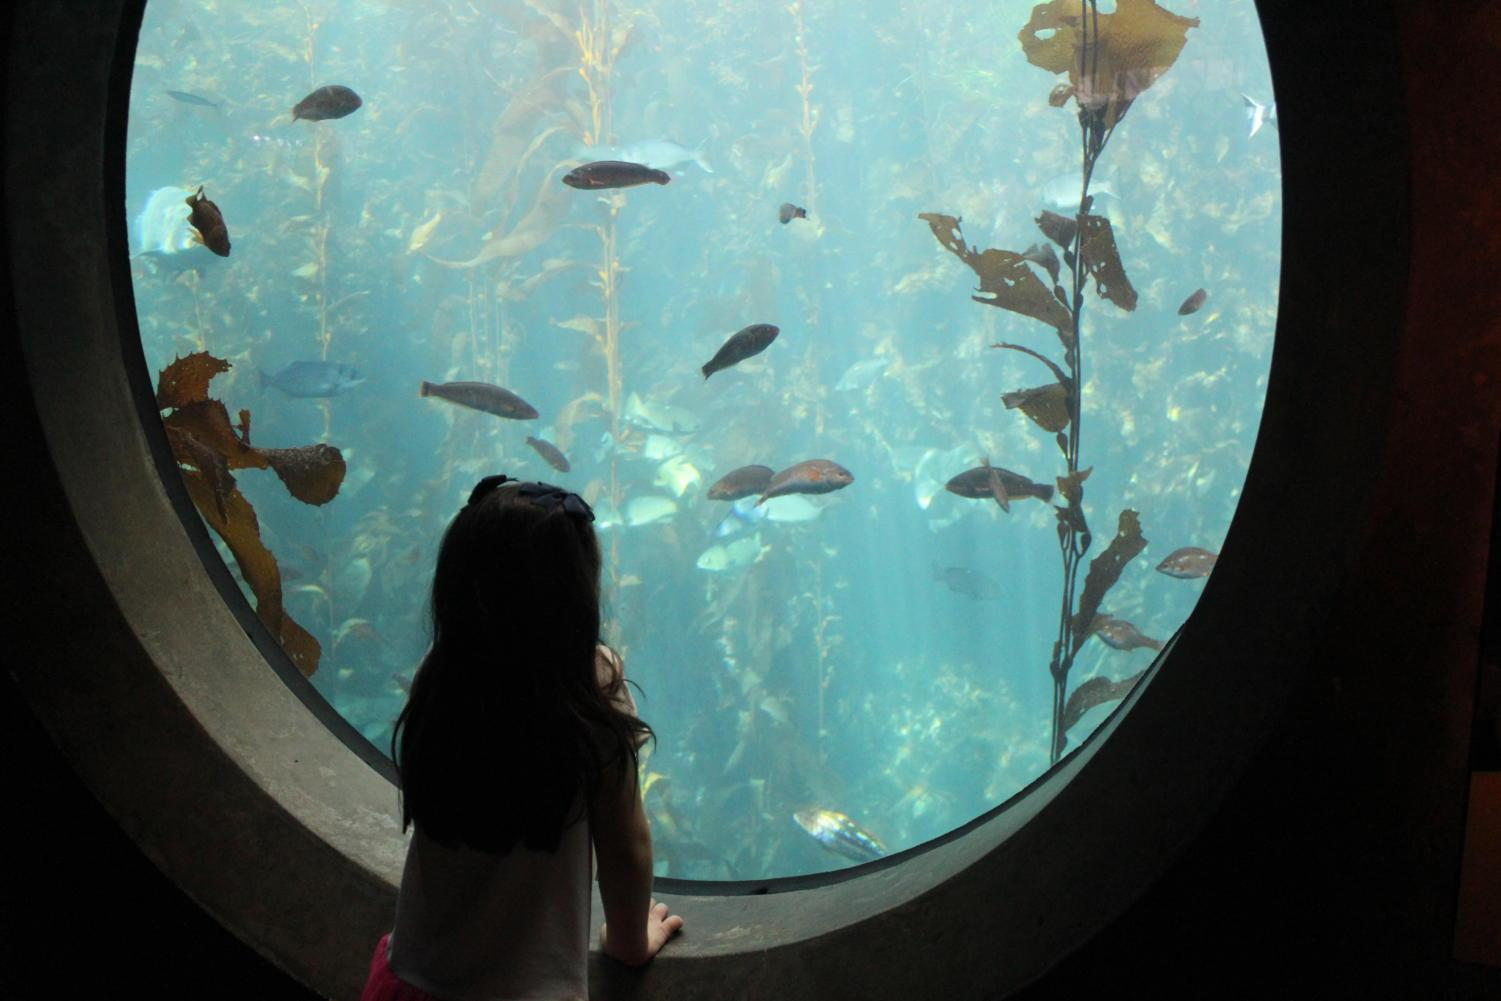 The Aquarium's concave observation windows allow kids to get close to the marine life.